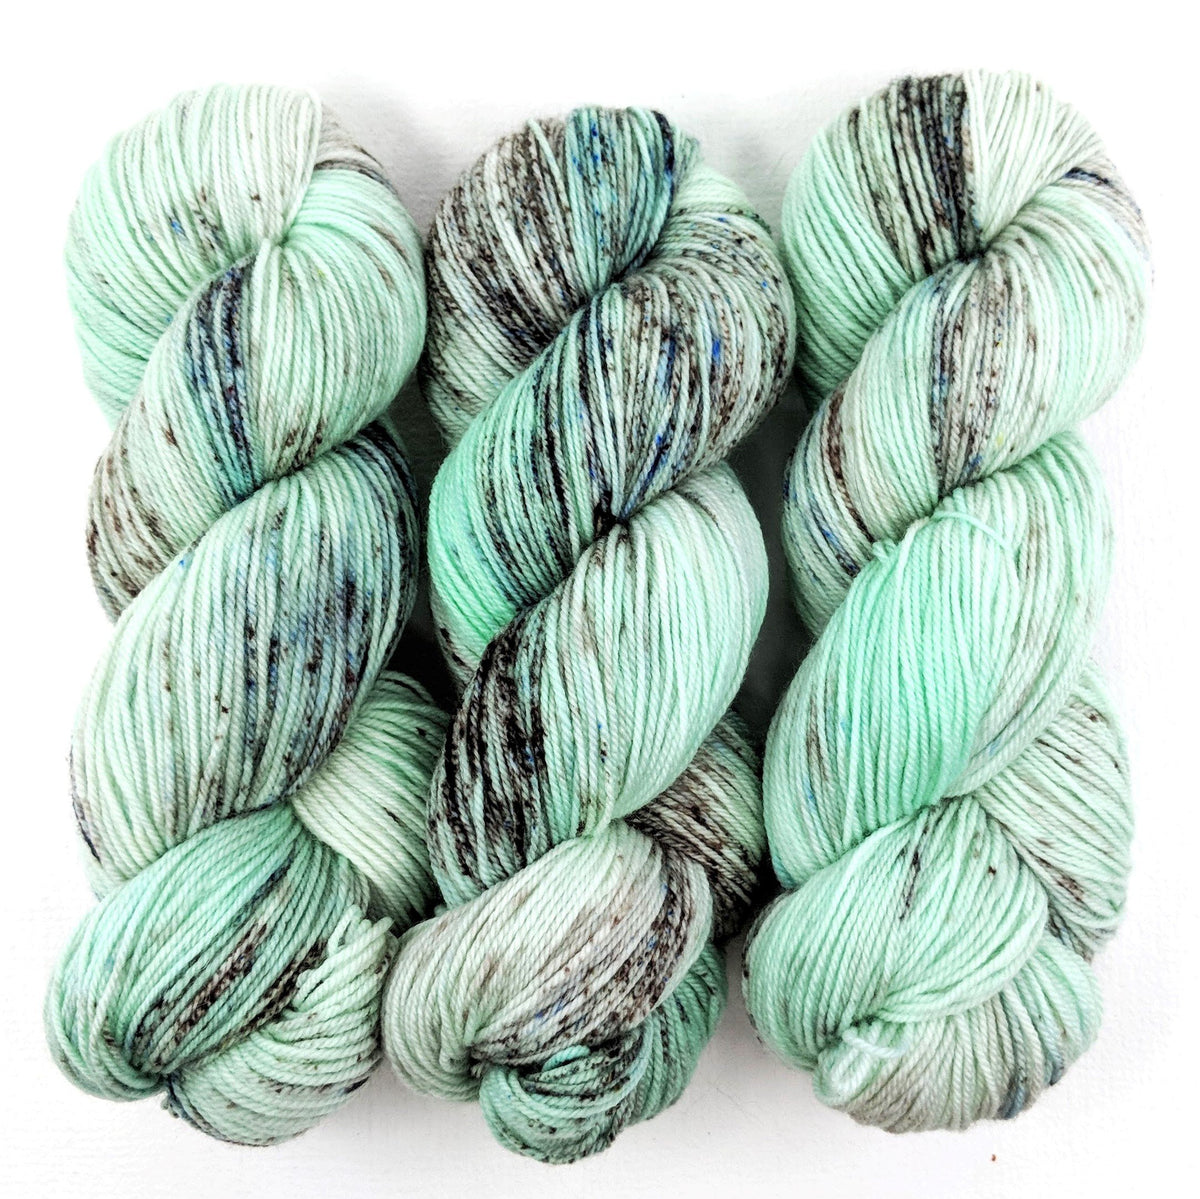 Mint Chocolate Chip in Worsted Weight